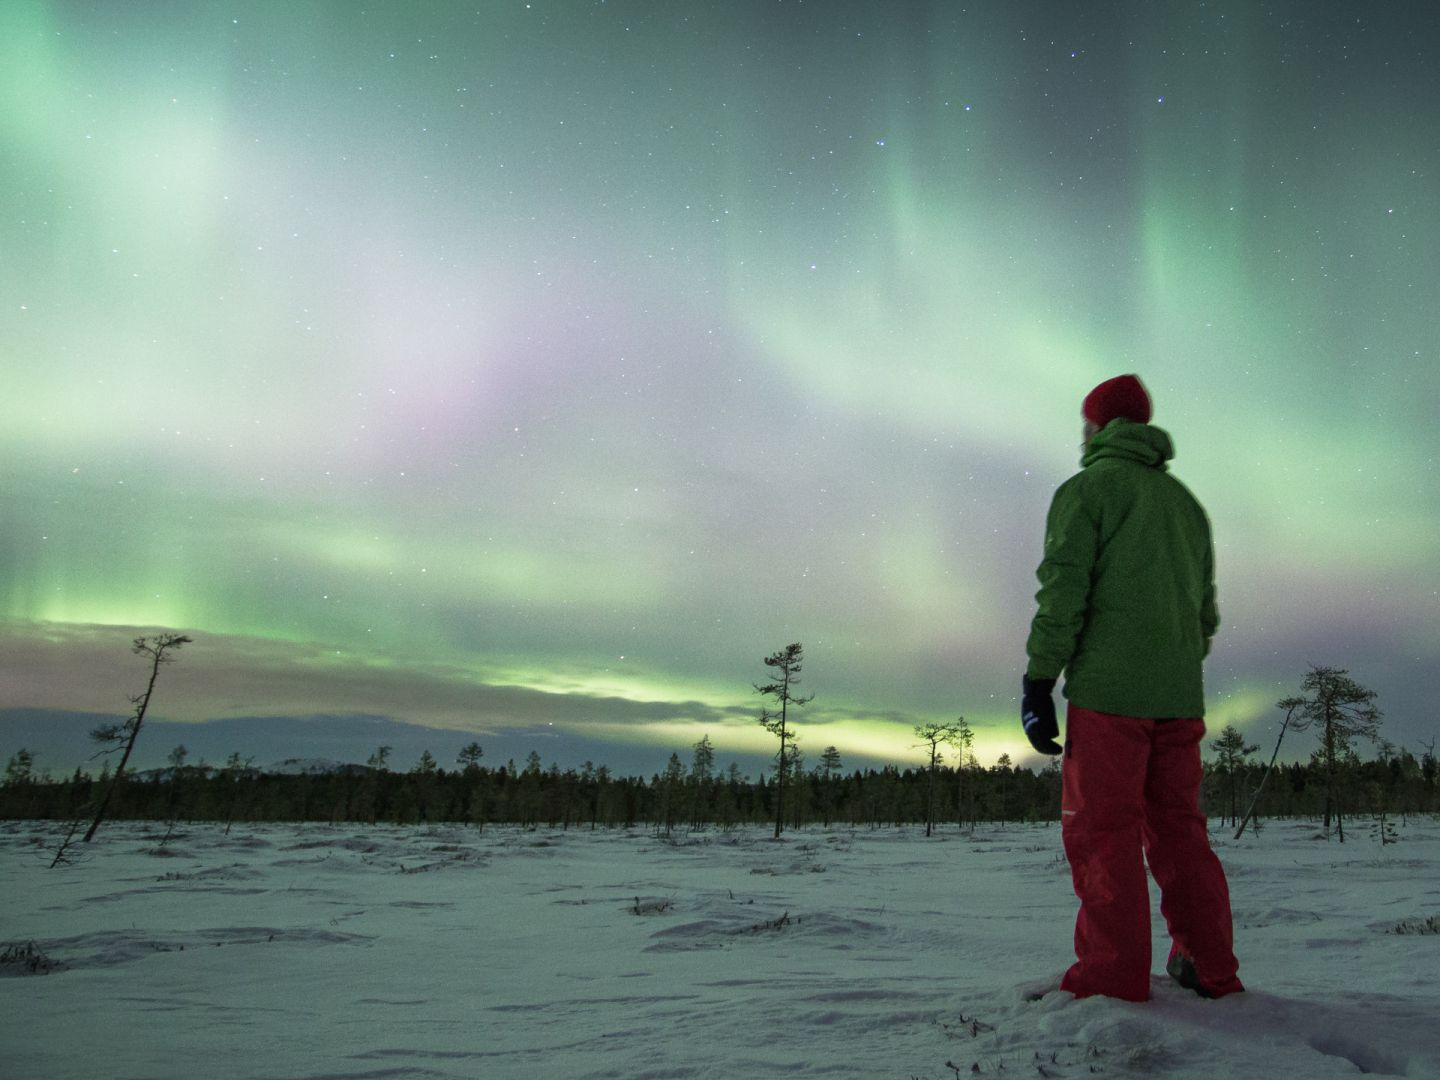 Watching the Northern Lights in Pyhä, in Lapland Finland